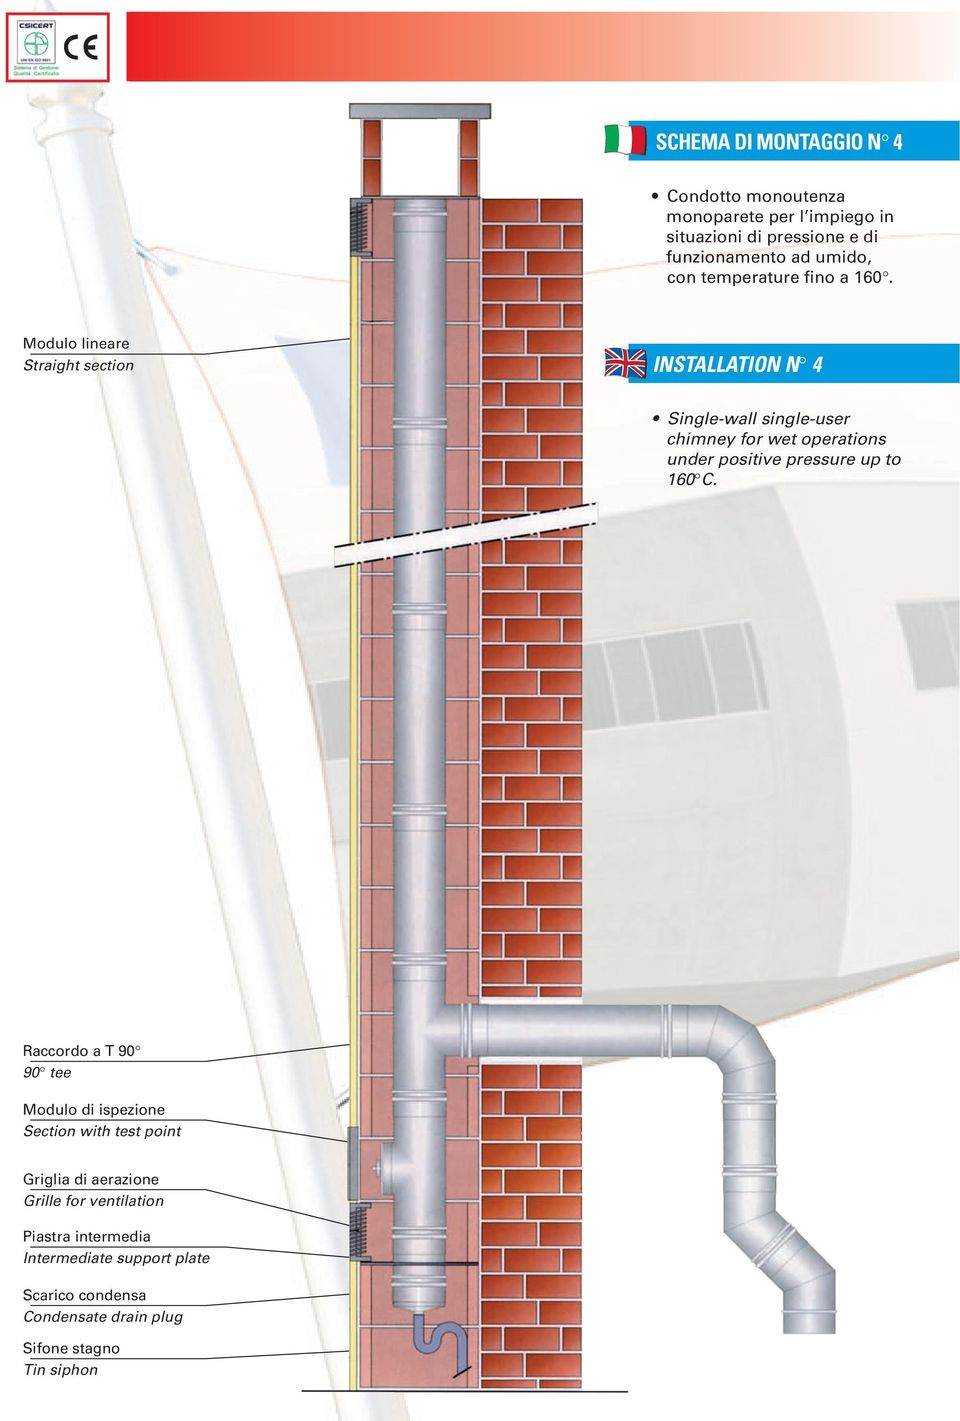 Modulo lineare Straight section INSTALLATION N 4 Single-wall single-user chimney for wet operations